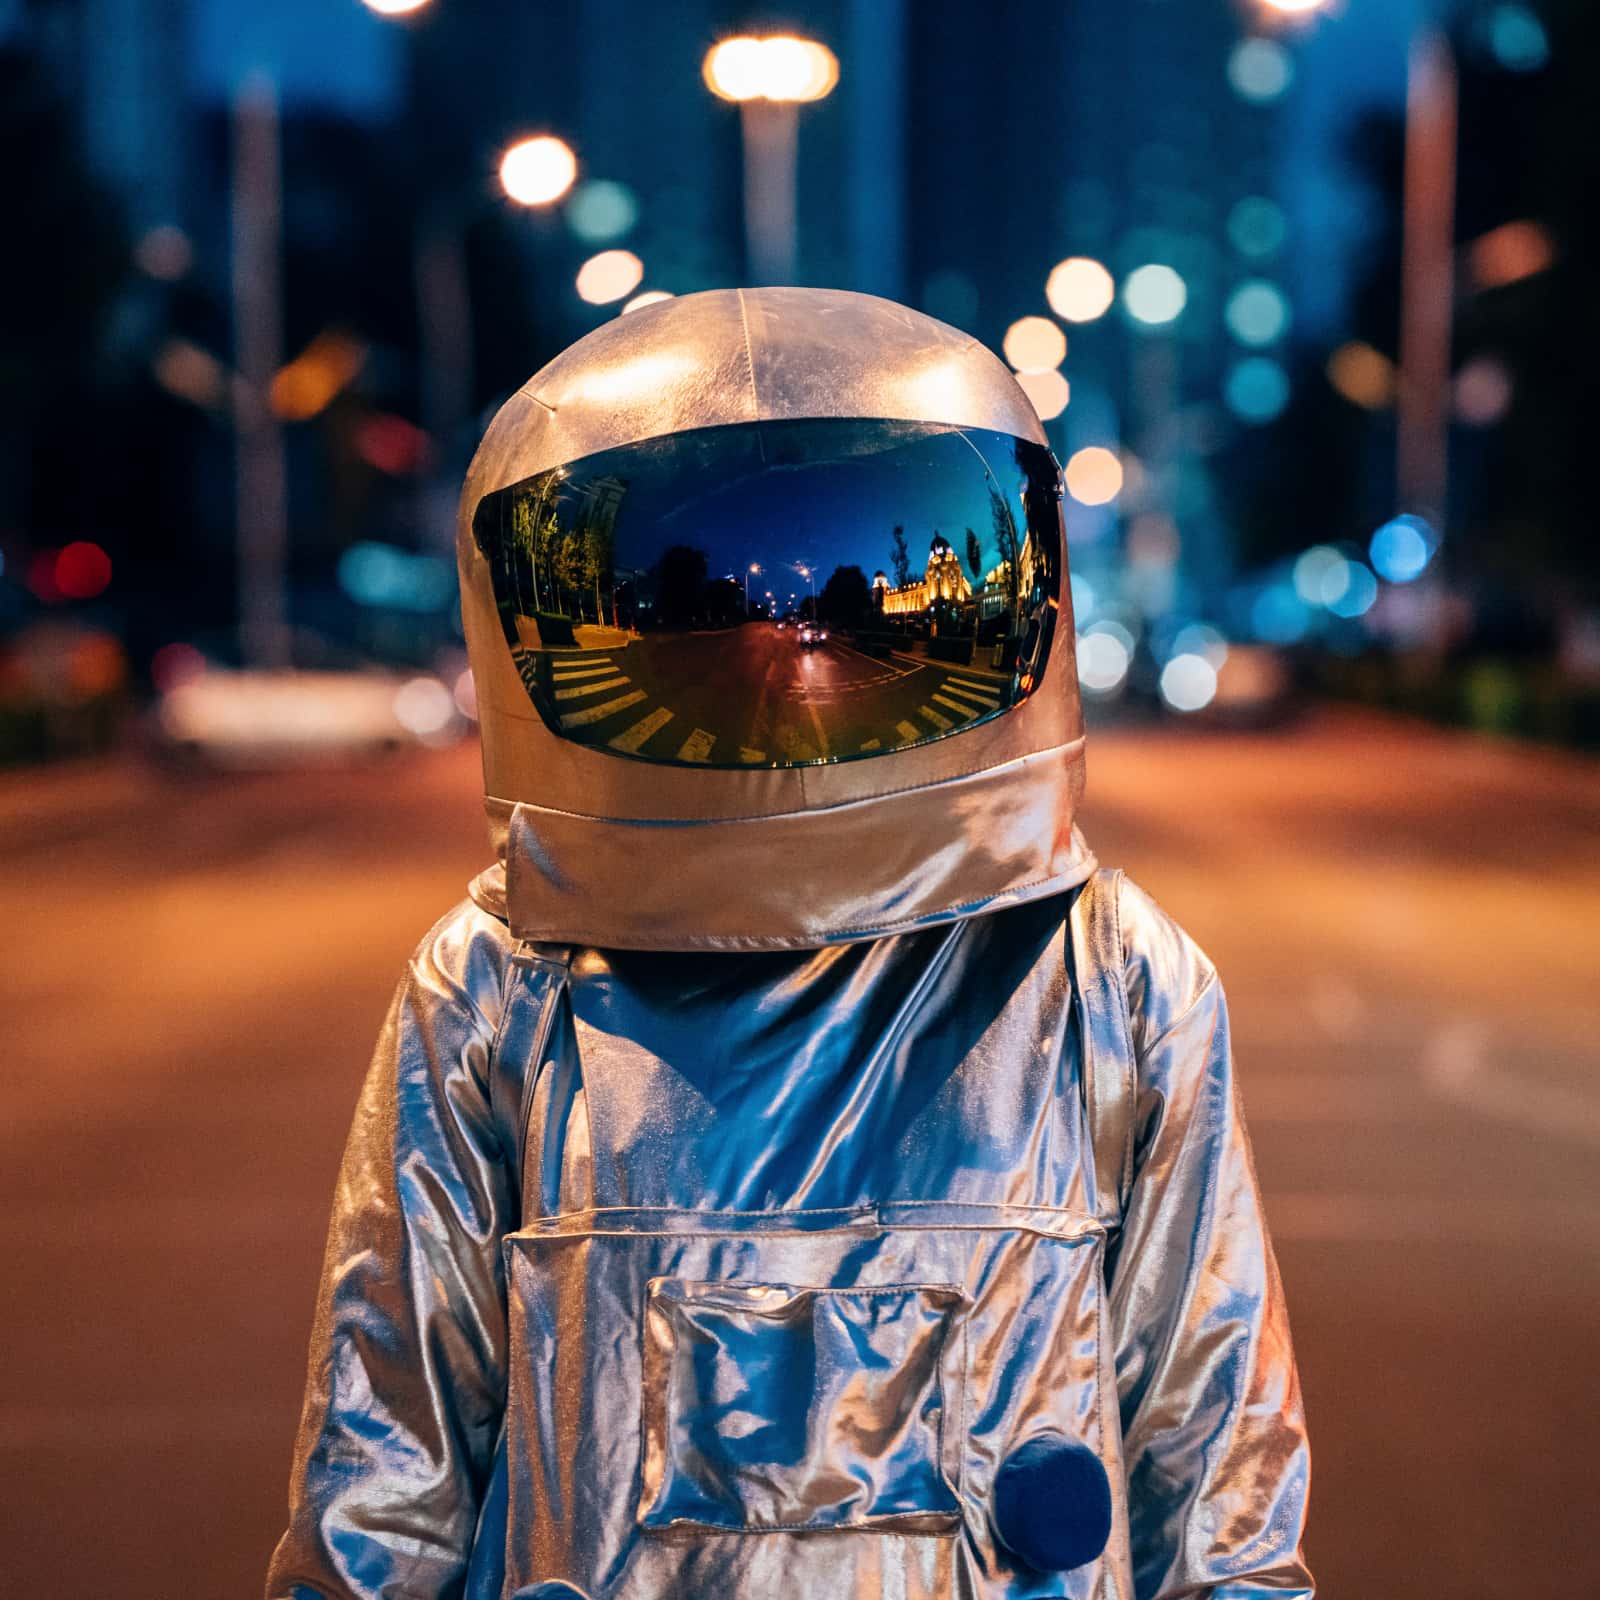 Spaceman on a street in a city at night